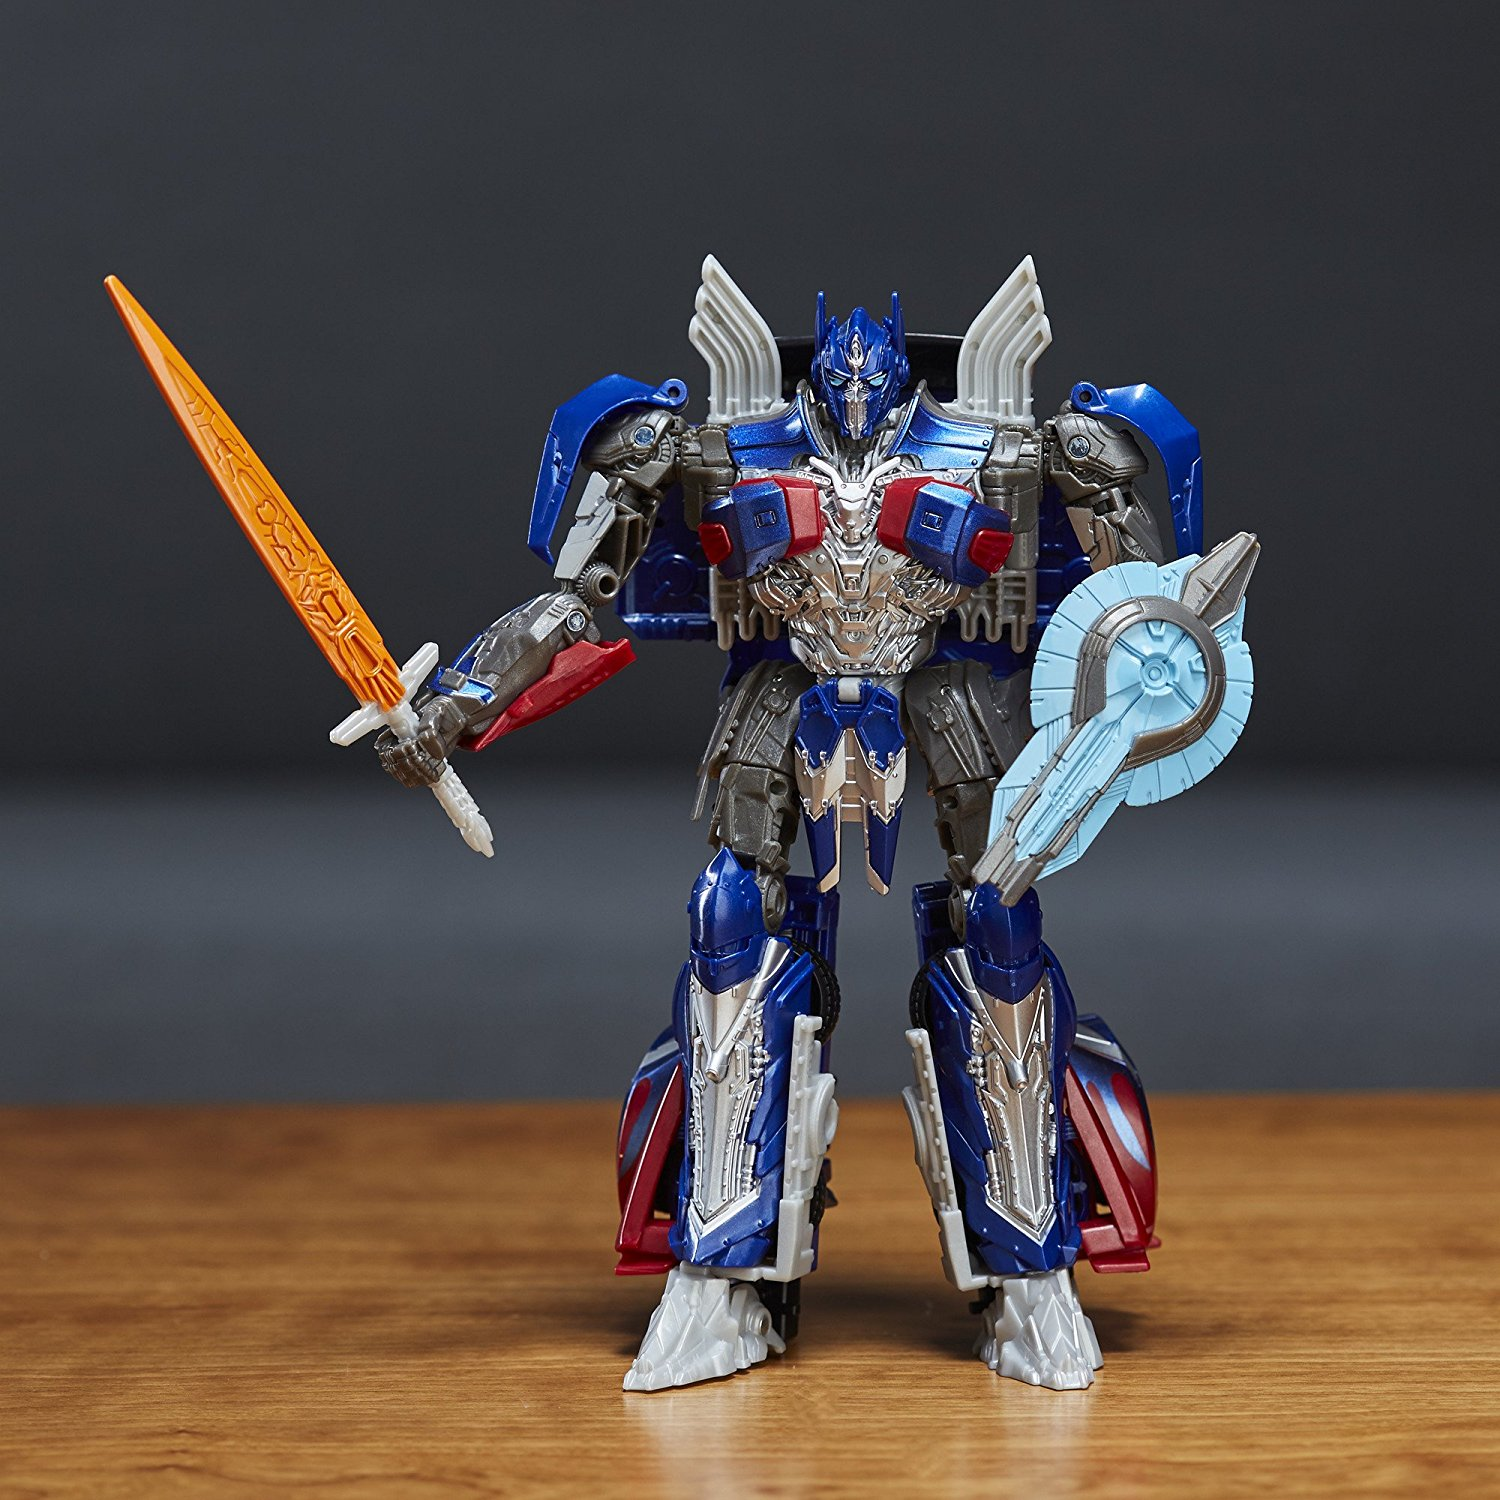 Transformers-5-The-Last-Knight-Voyager-Class-Optimus-Prime-03.jpg